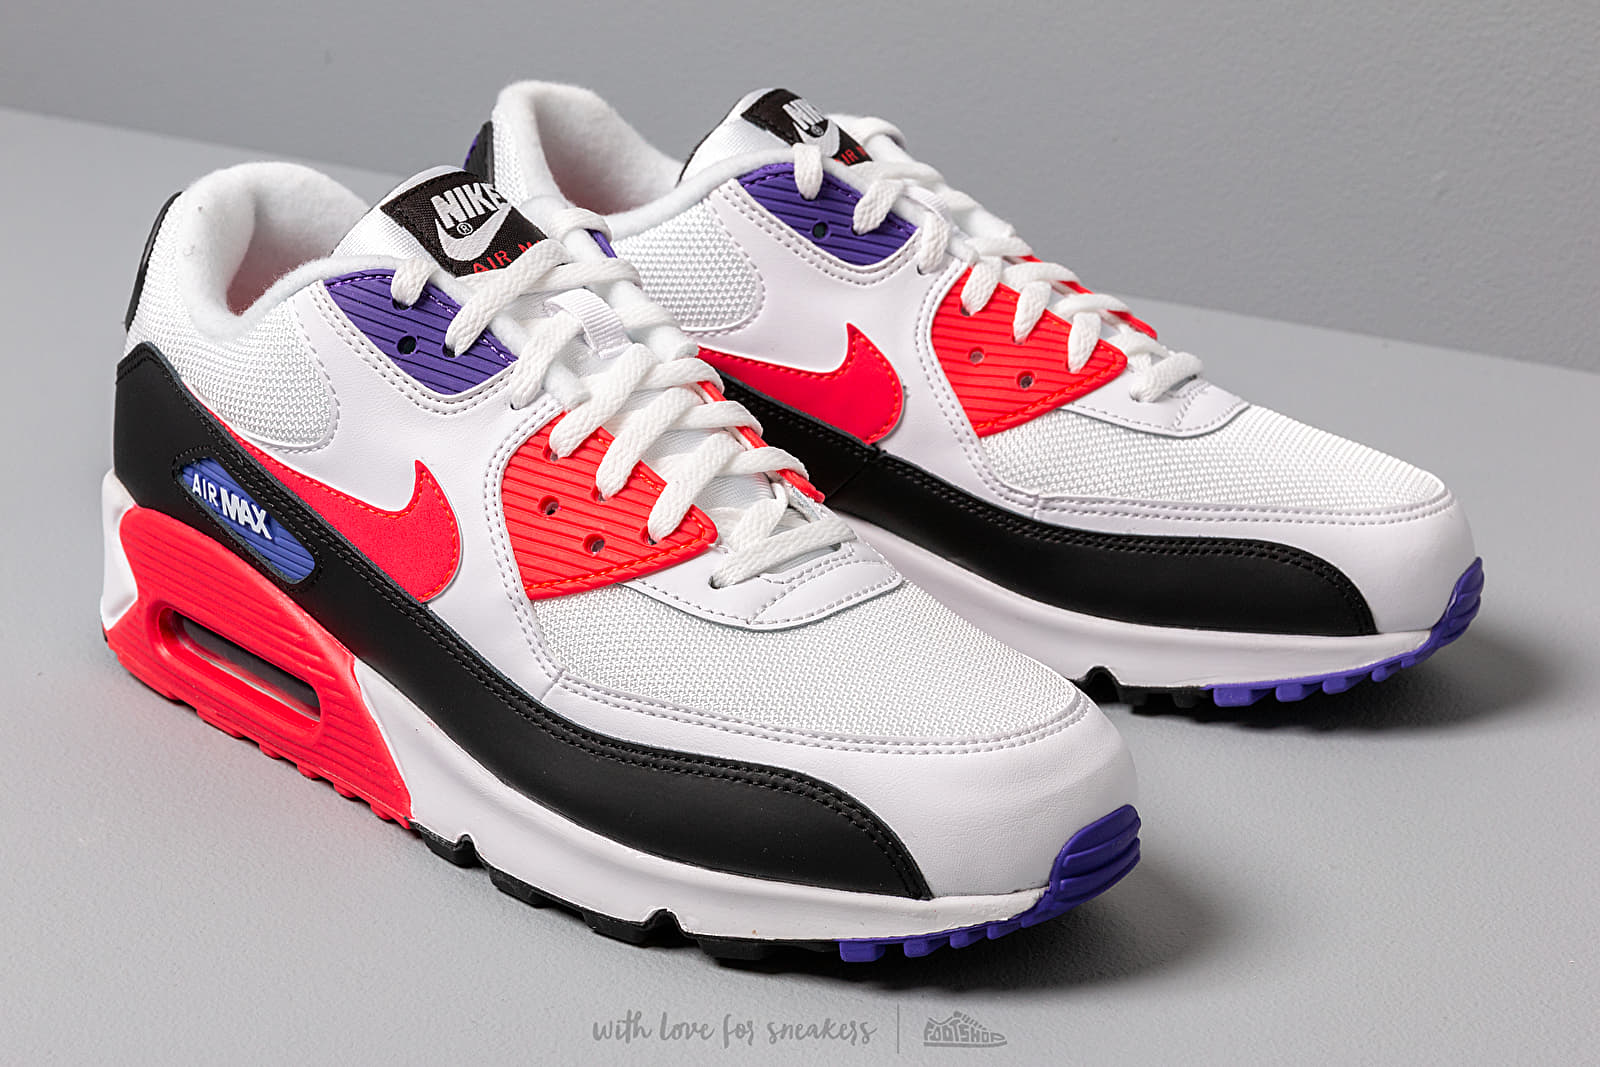 Nike Air Max 90 Essential White Red Orbit Psychic Purple